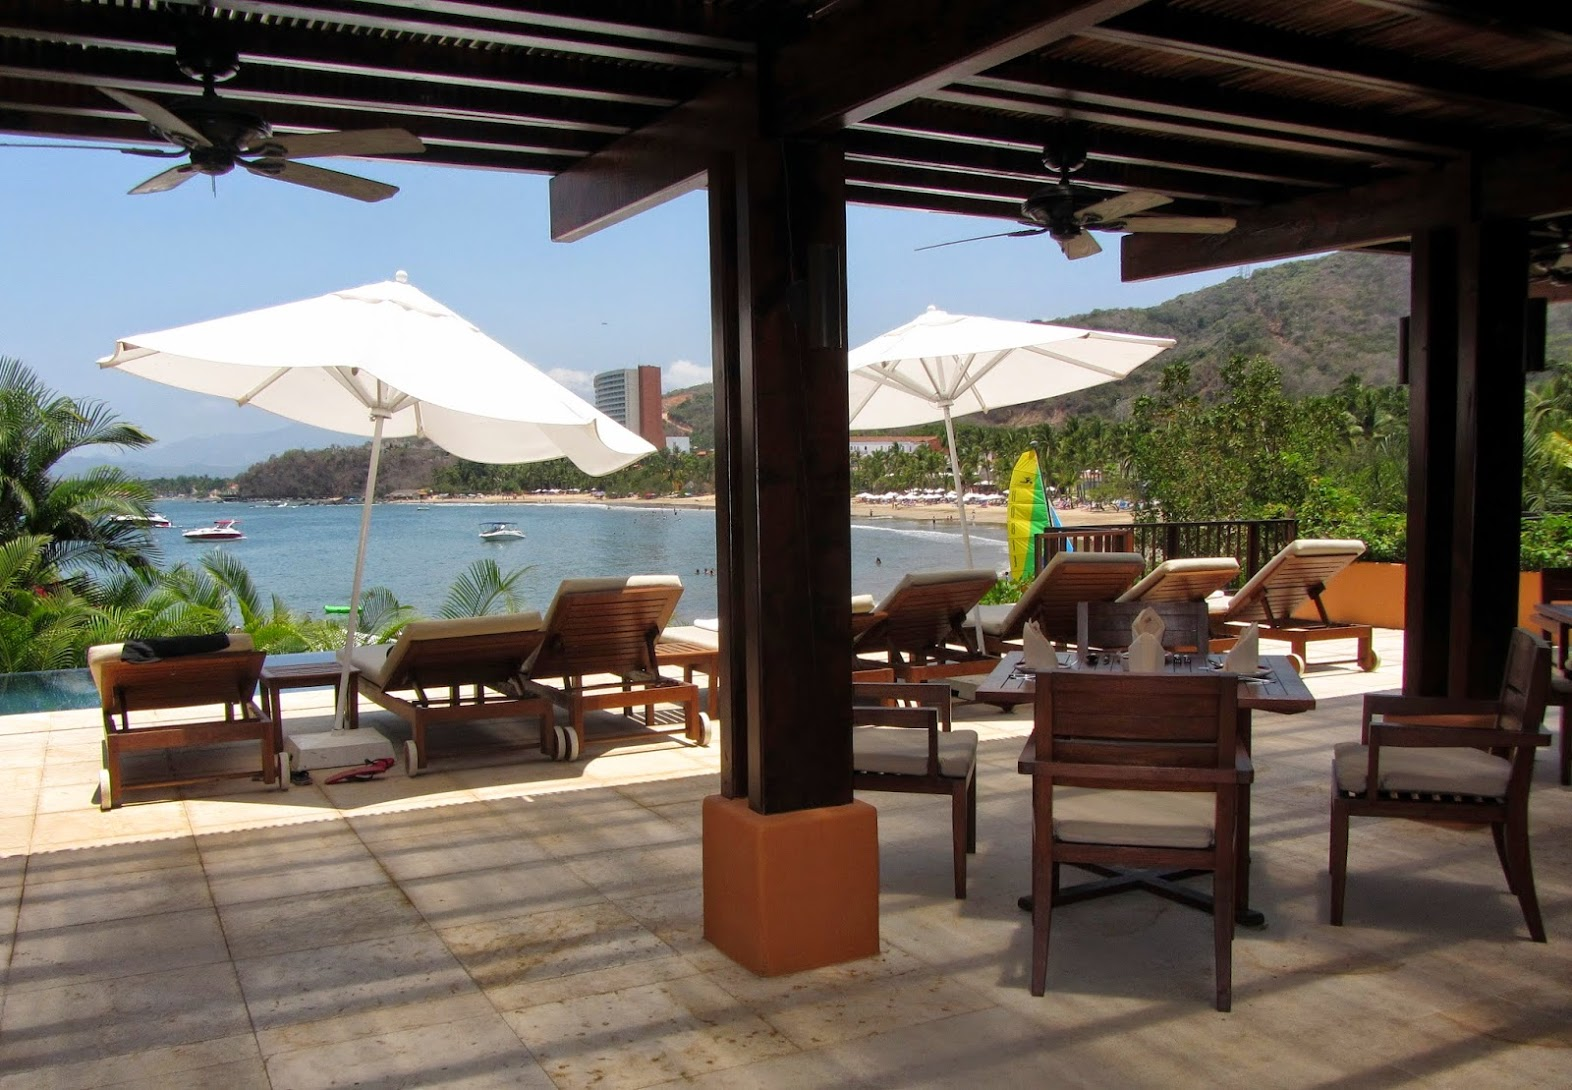 Vista Comedor Club Playa Quieta.JPG